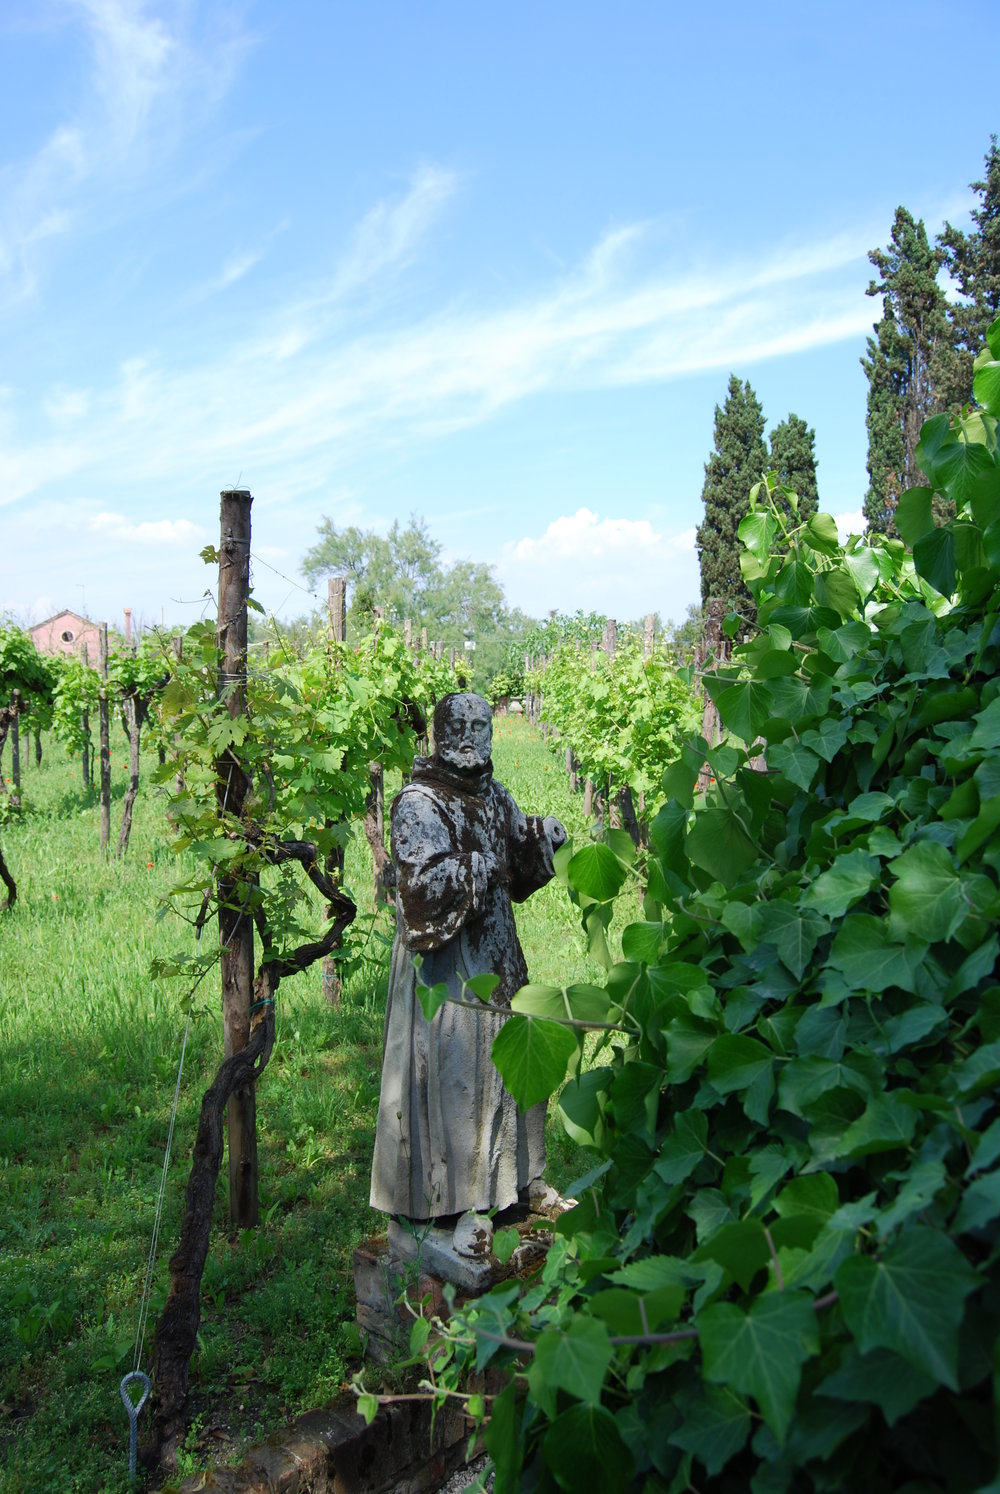 Monk in a Vineyard , taken by the author, May 8, 2013, Torcello Island, Venice, Italy.